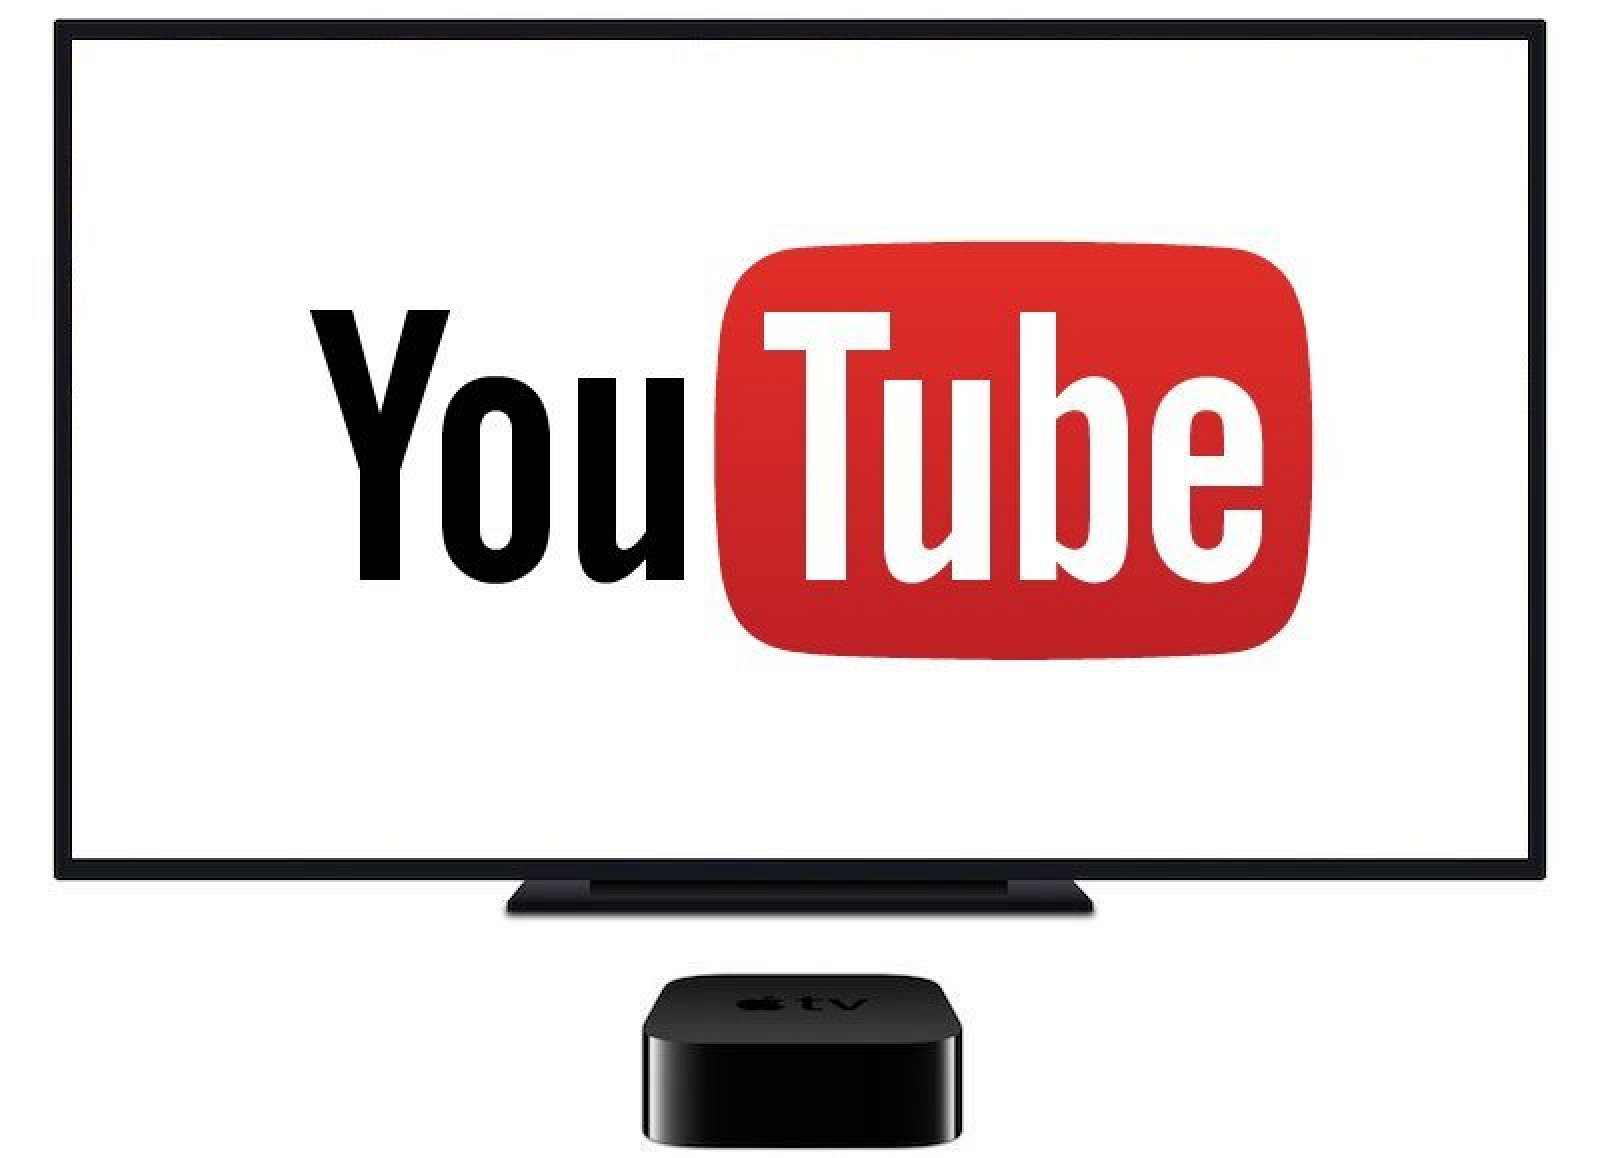 YouTube Users Watch More Than 1 Billion Hours of Video a Day, Will Soon  Outpace U.S. TV - Mac Rumors